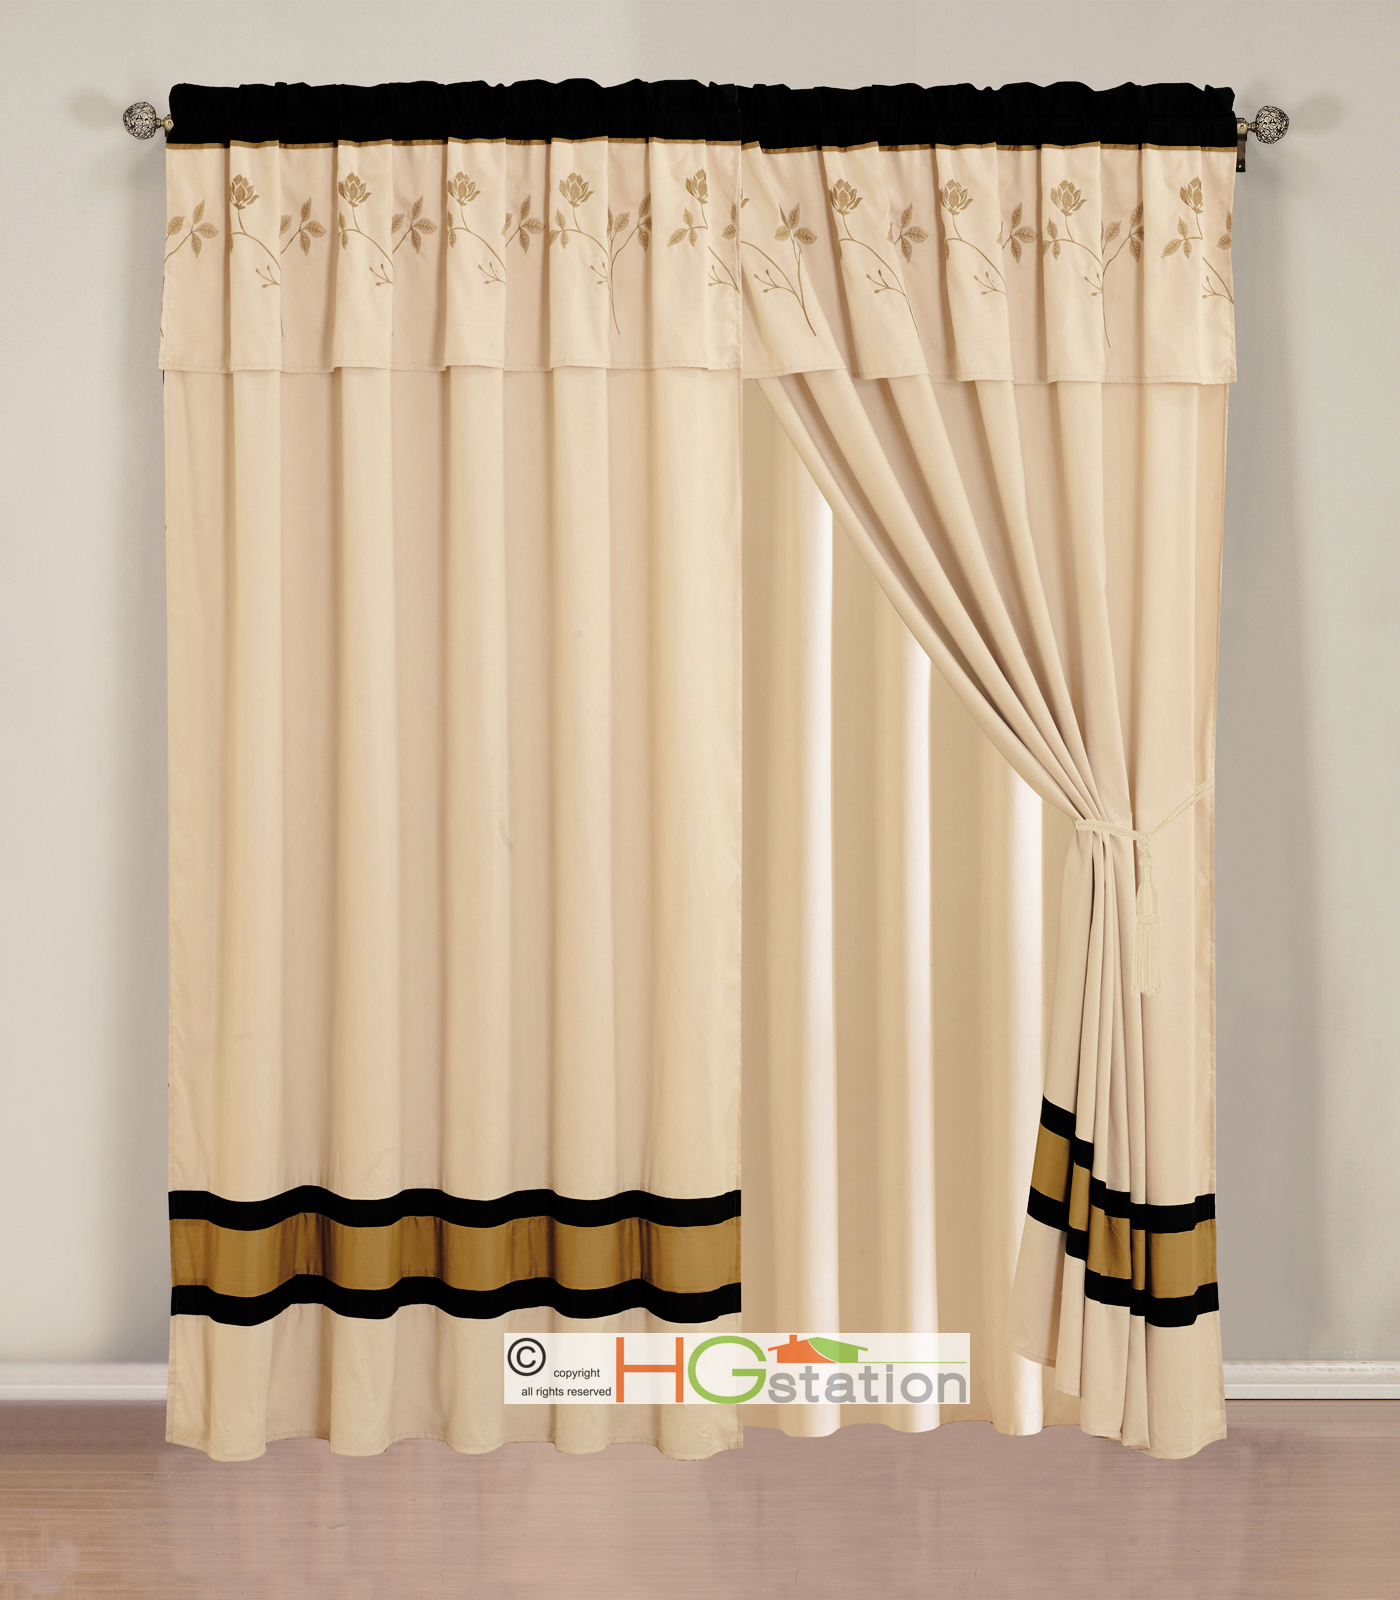 4 Pc Classy Verona Floral Embroidery Curtain Set Beige Black Gold Valance Sheer Ebay